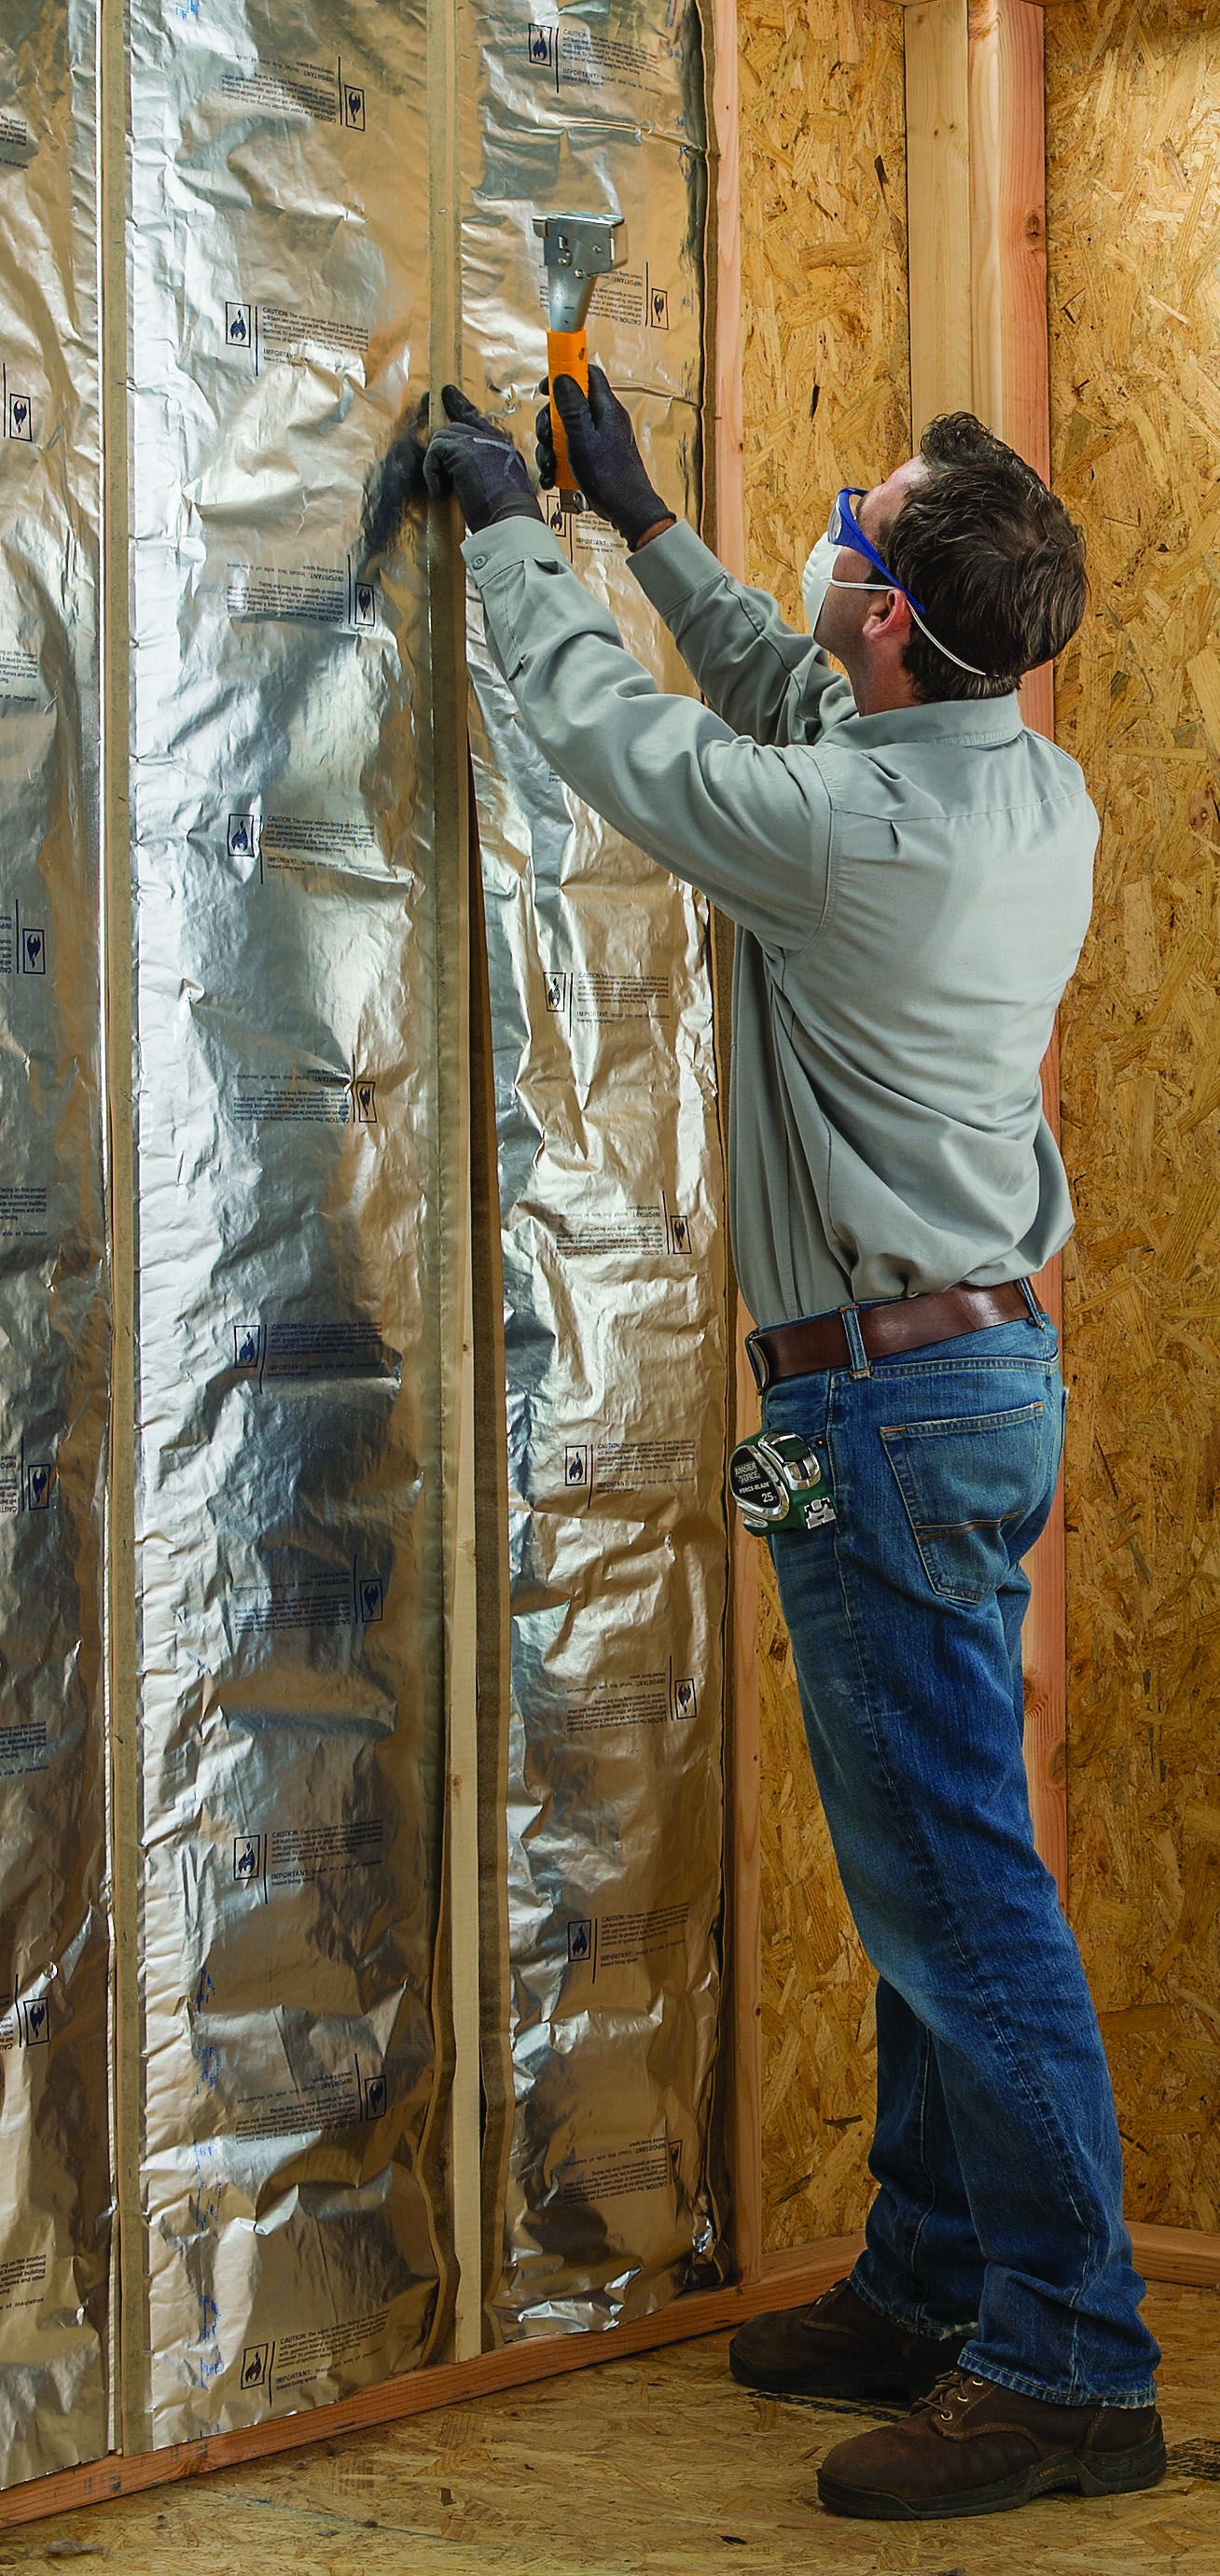 Guardian By Knauf Insulation Delivers Sustainable Products That Provide Comfort And Improve Sound Control Foil Faced Insulation Foil Insulation Roll Insulation